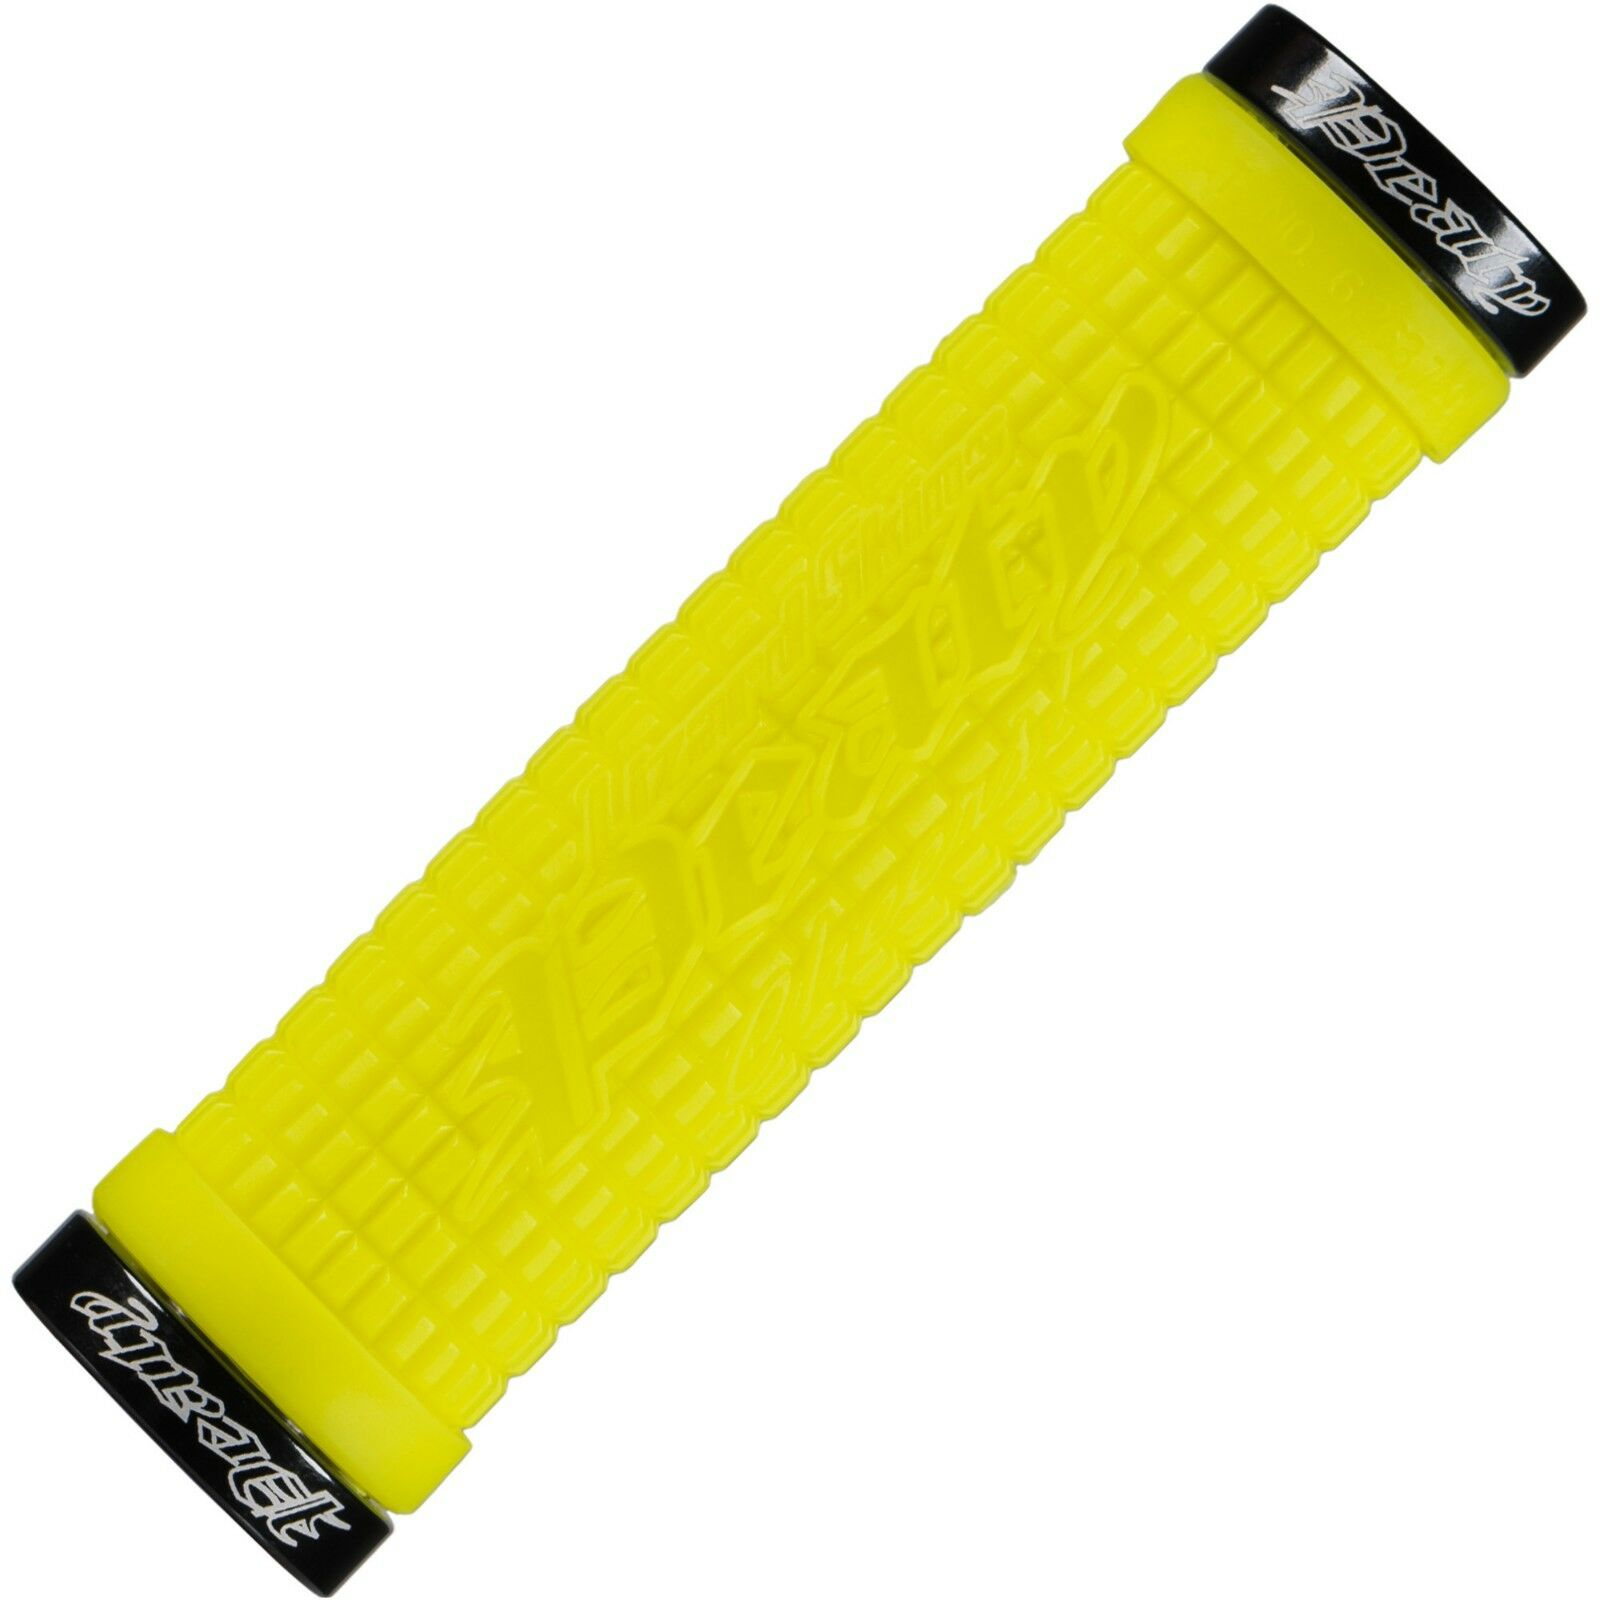 Cycling Mountain Bike Lizard Skins Lock-On Peaty Grip 130MM Steve Peat BMX